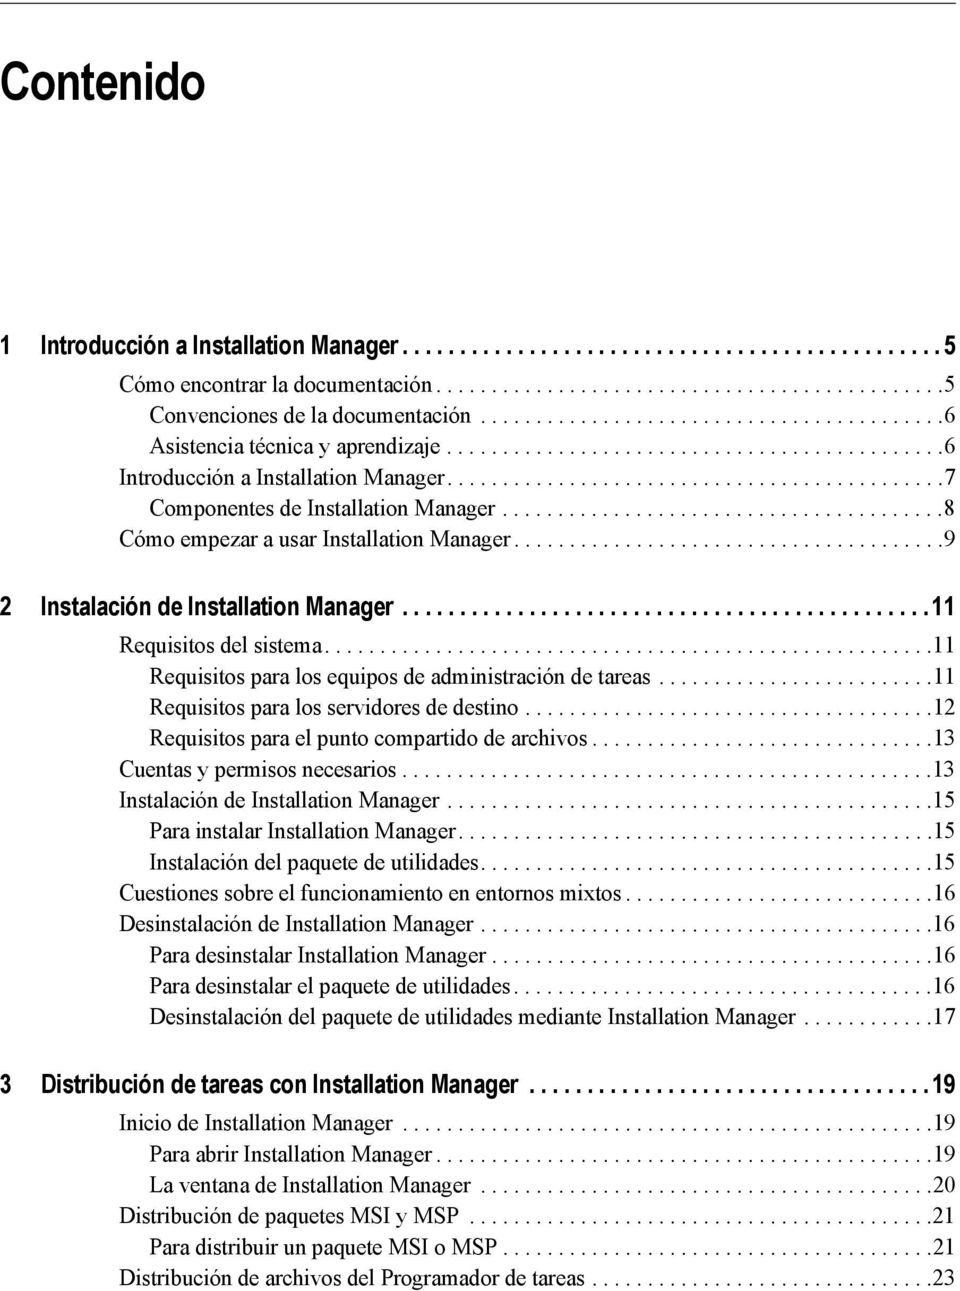 .......................................8 Cómo empezar a usar Installation Manager.......................................9 2 Instalación de Installation Manager..............................................11 Requisitos del sistema.